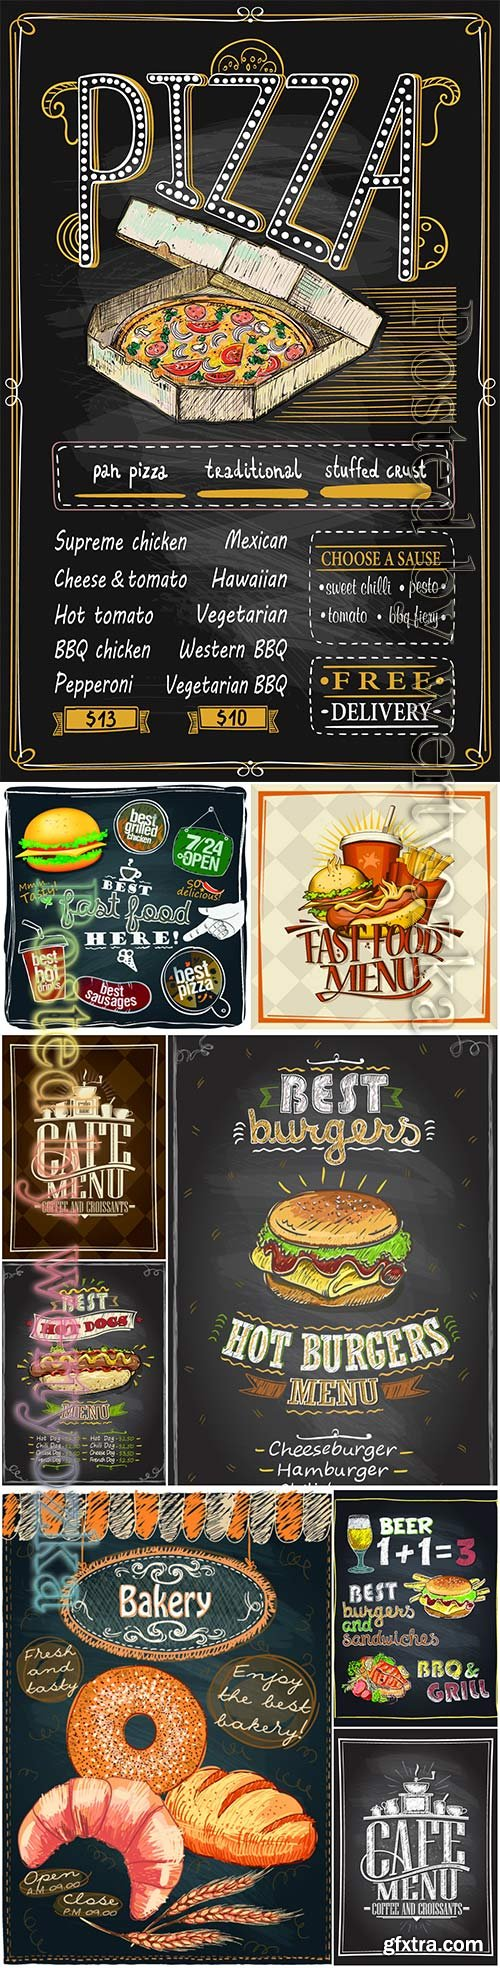 Cafe menu card design, fast food, pizza